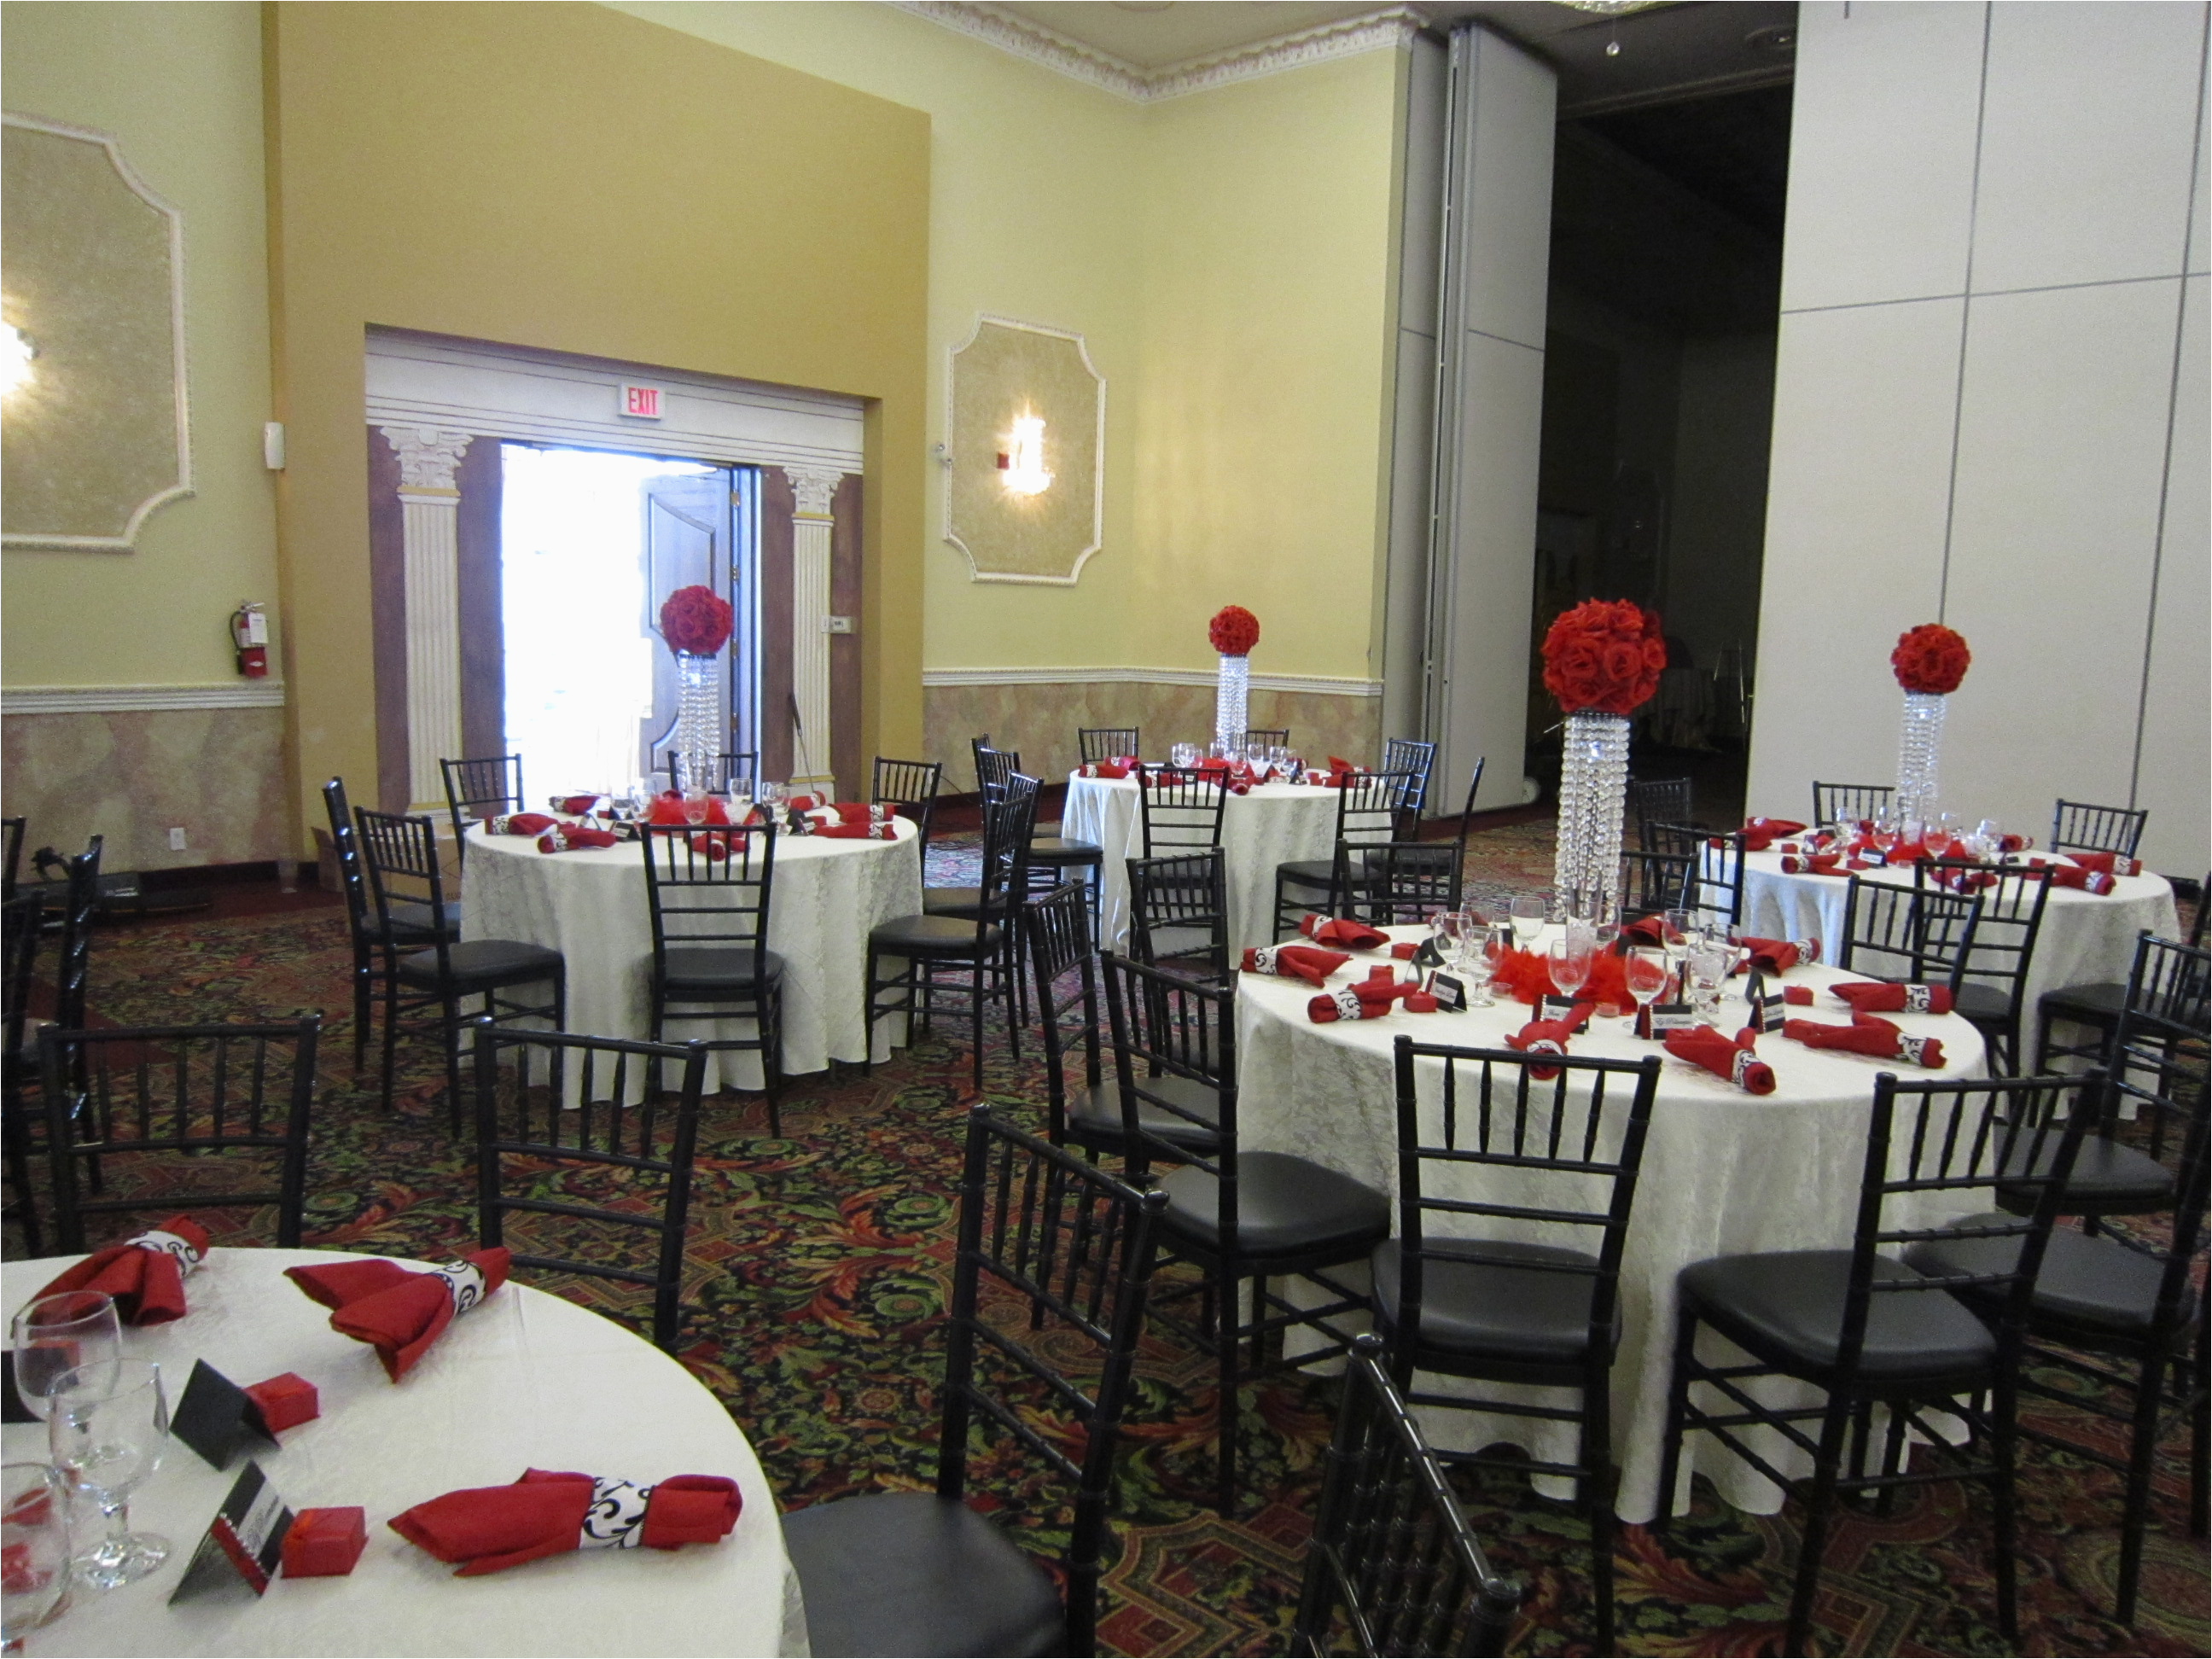 18th birthday party with red rose ball crystal centerpieces